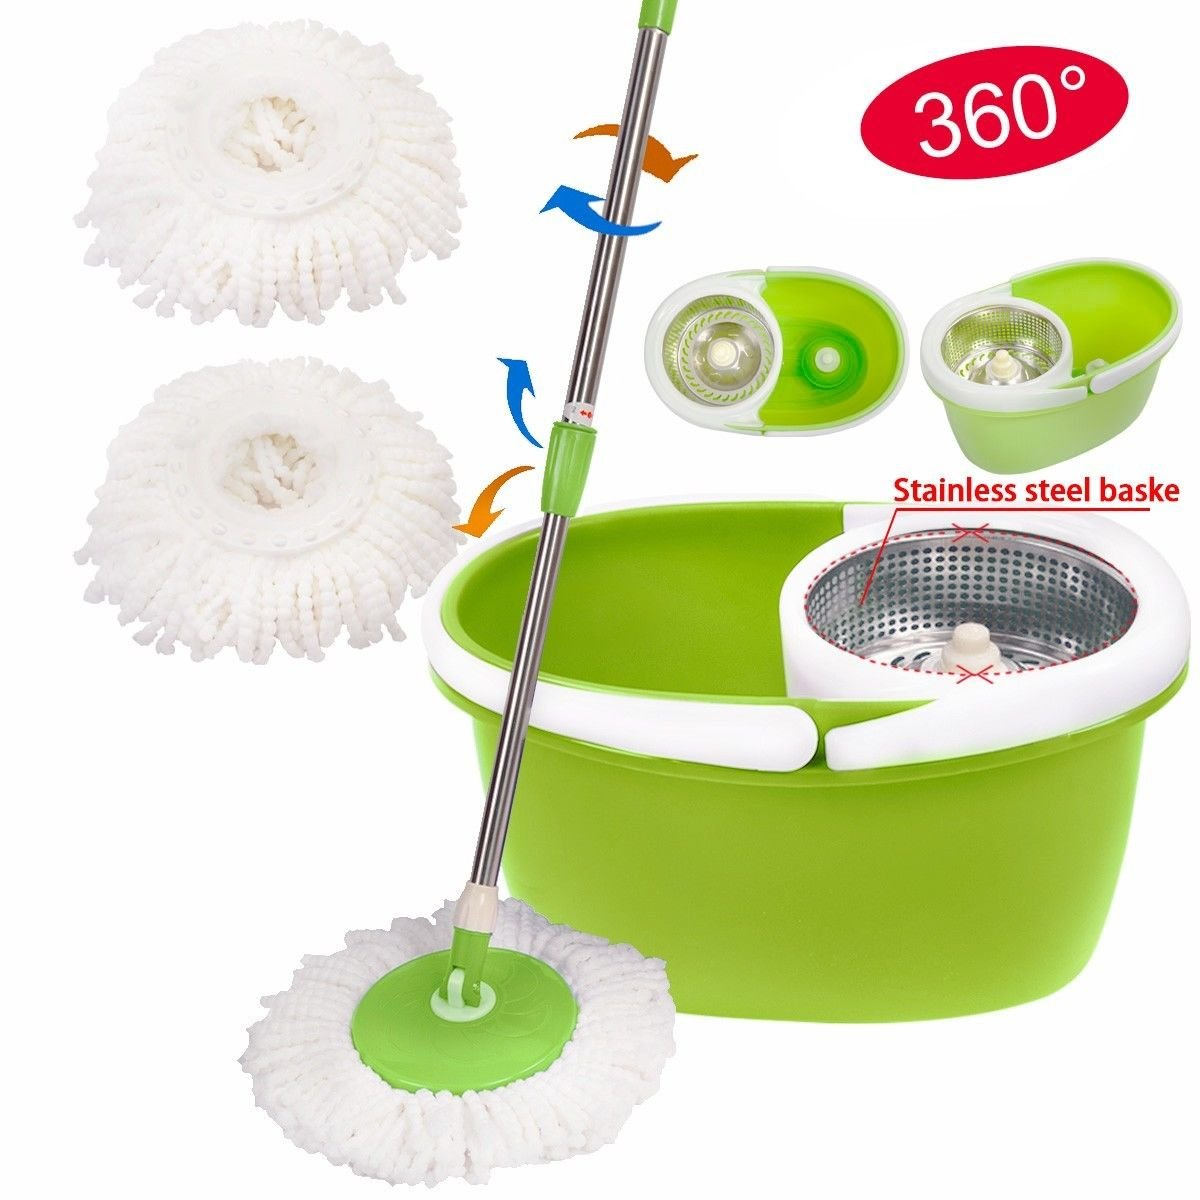 Generic YanHong150720-261 8yh1255yh ucket 2 Heads Stainless Steel ydrate Bask 360¡ã Rotating 360¡ã Rota Dehydrate Basket op Stainl Magic Spin Mop g Magic S W/Bucket 2 Heads